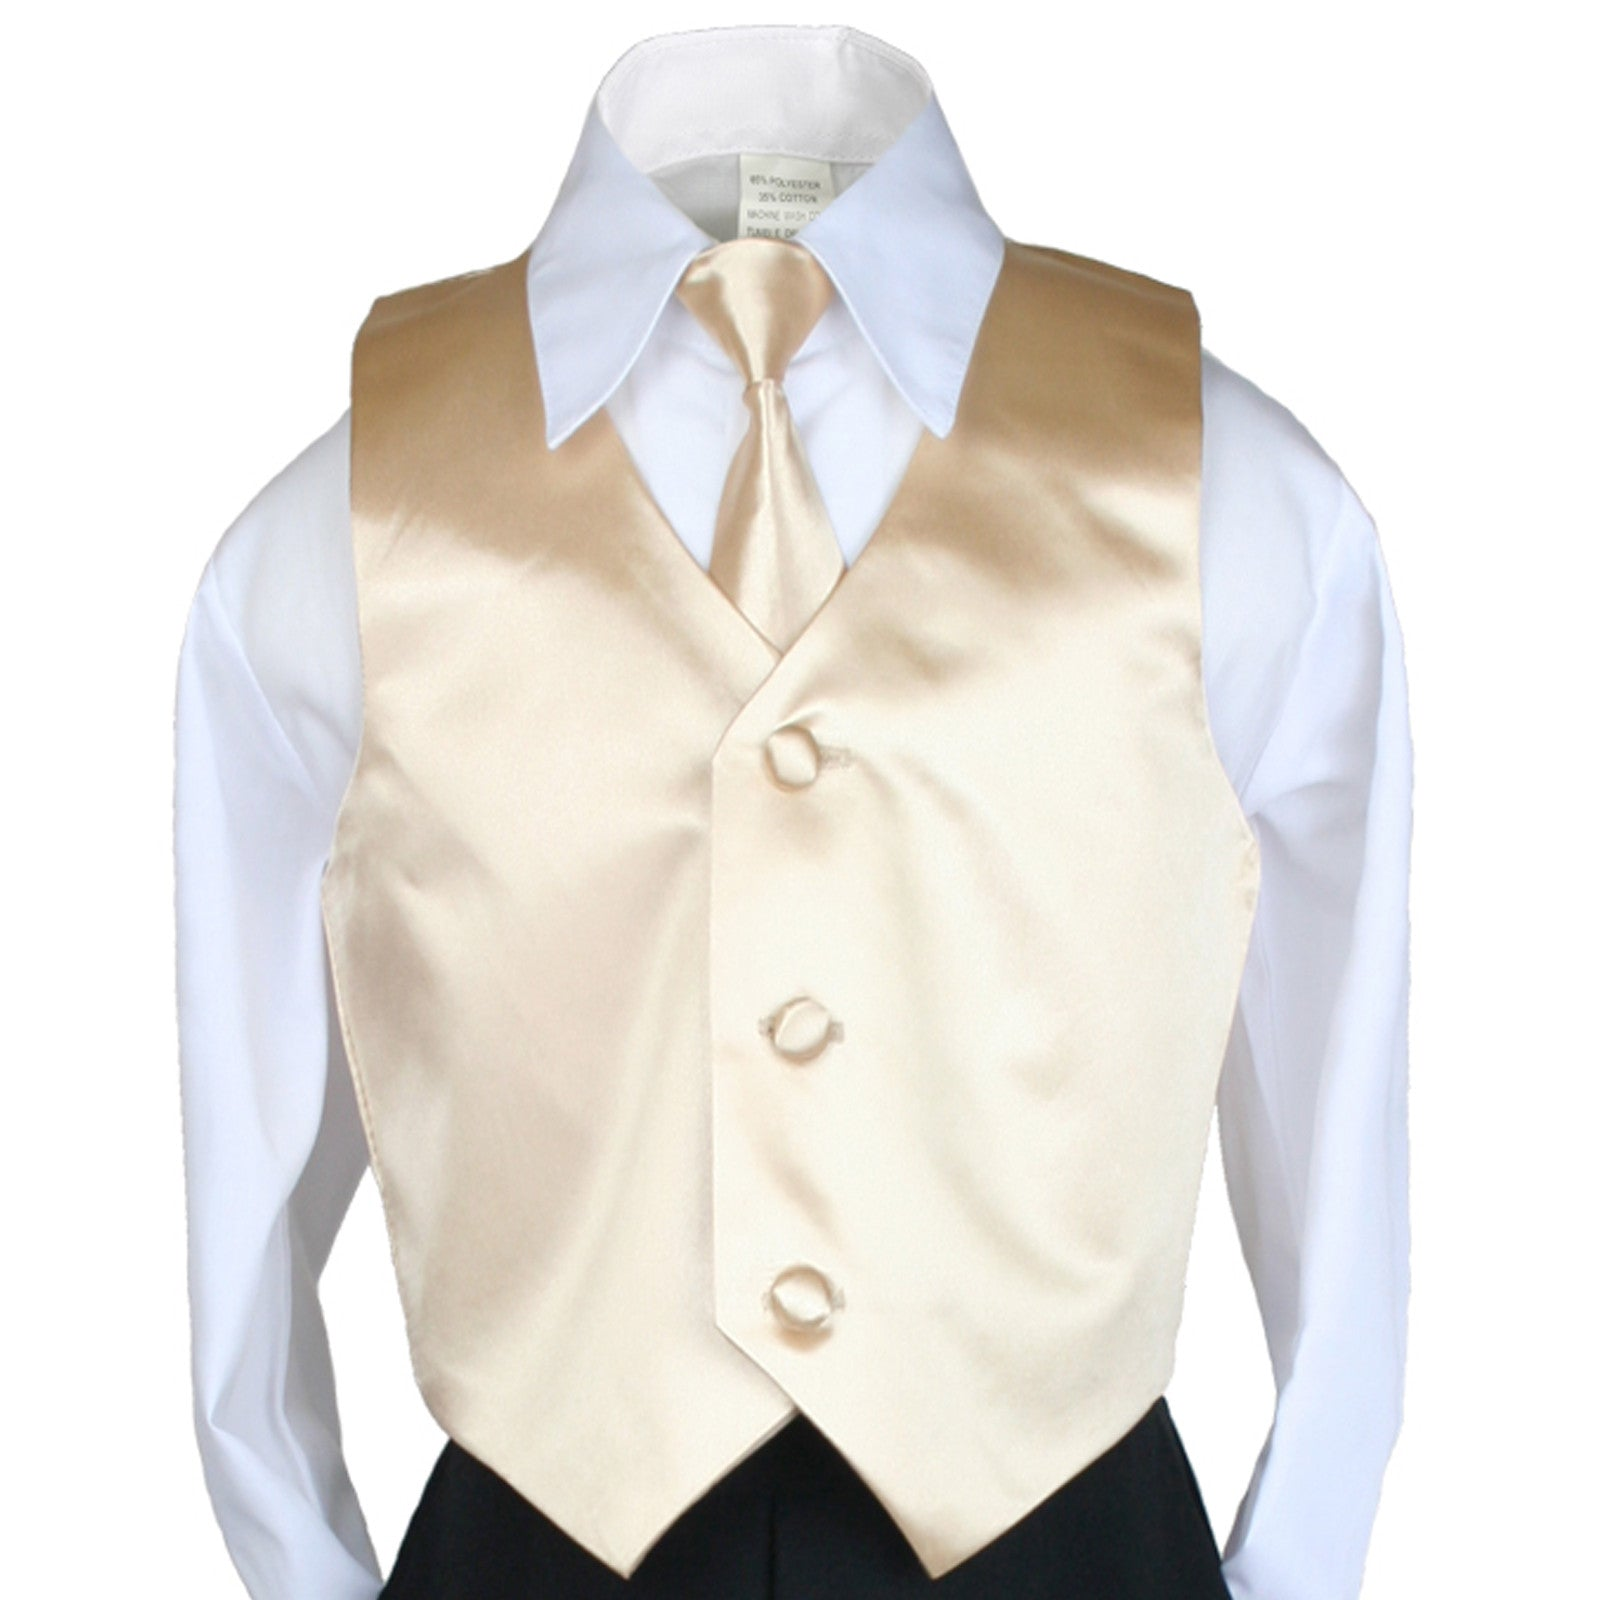 Unotux 6pc Boys Suit with Satin Orange Necktie from Baby to Teen